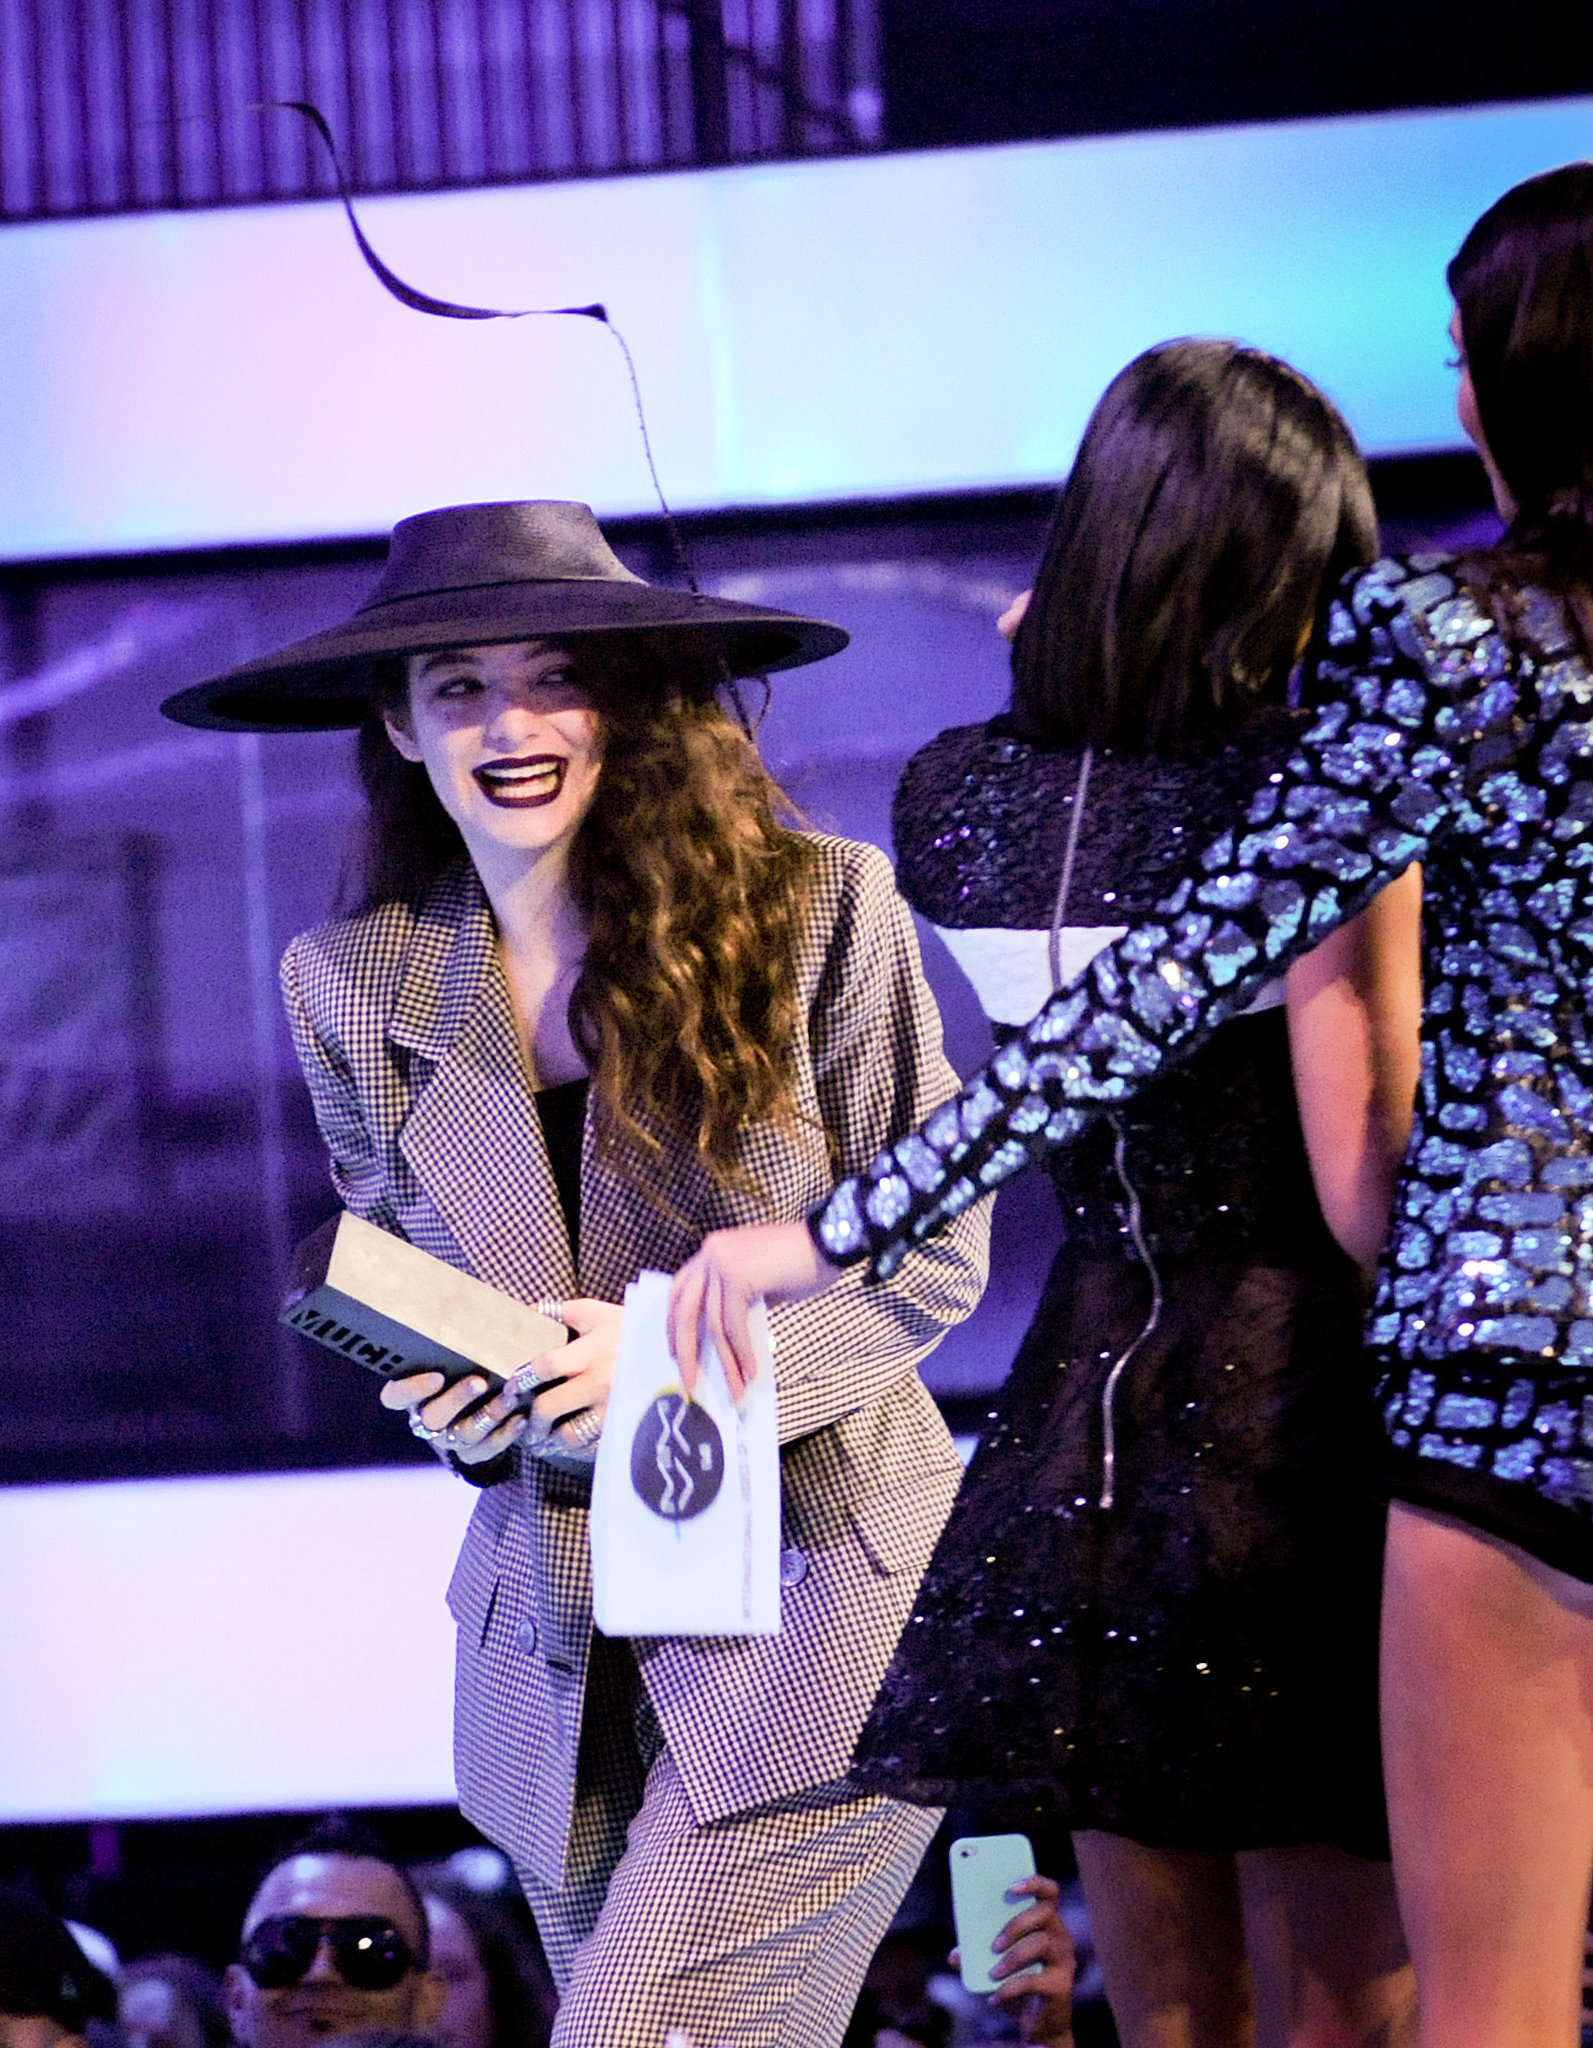 Lorde ran away from Kendall and Kylie Jenner at the MuchMusic Video Awards on Sunday in Toronto.